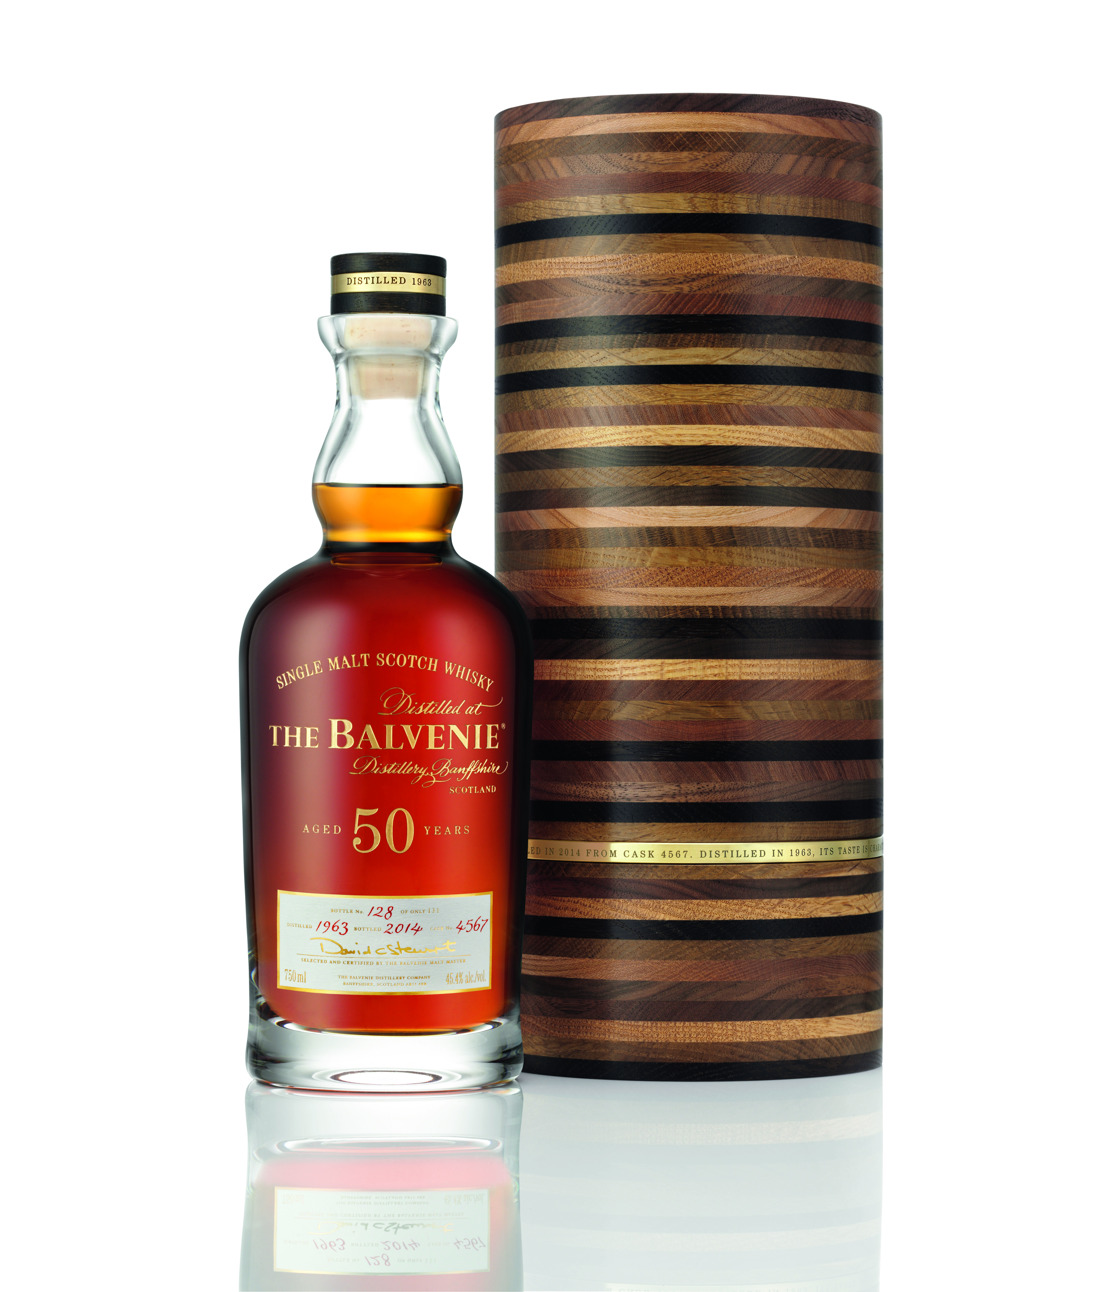 Exceptionally Crafted, The Balvenie Fifty: Marriage 0962 Announces it's arrival to Canada in time for the Holiday Season